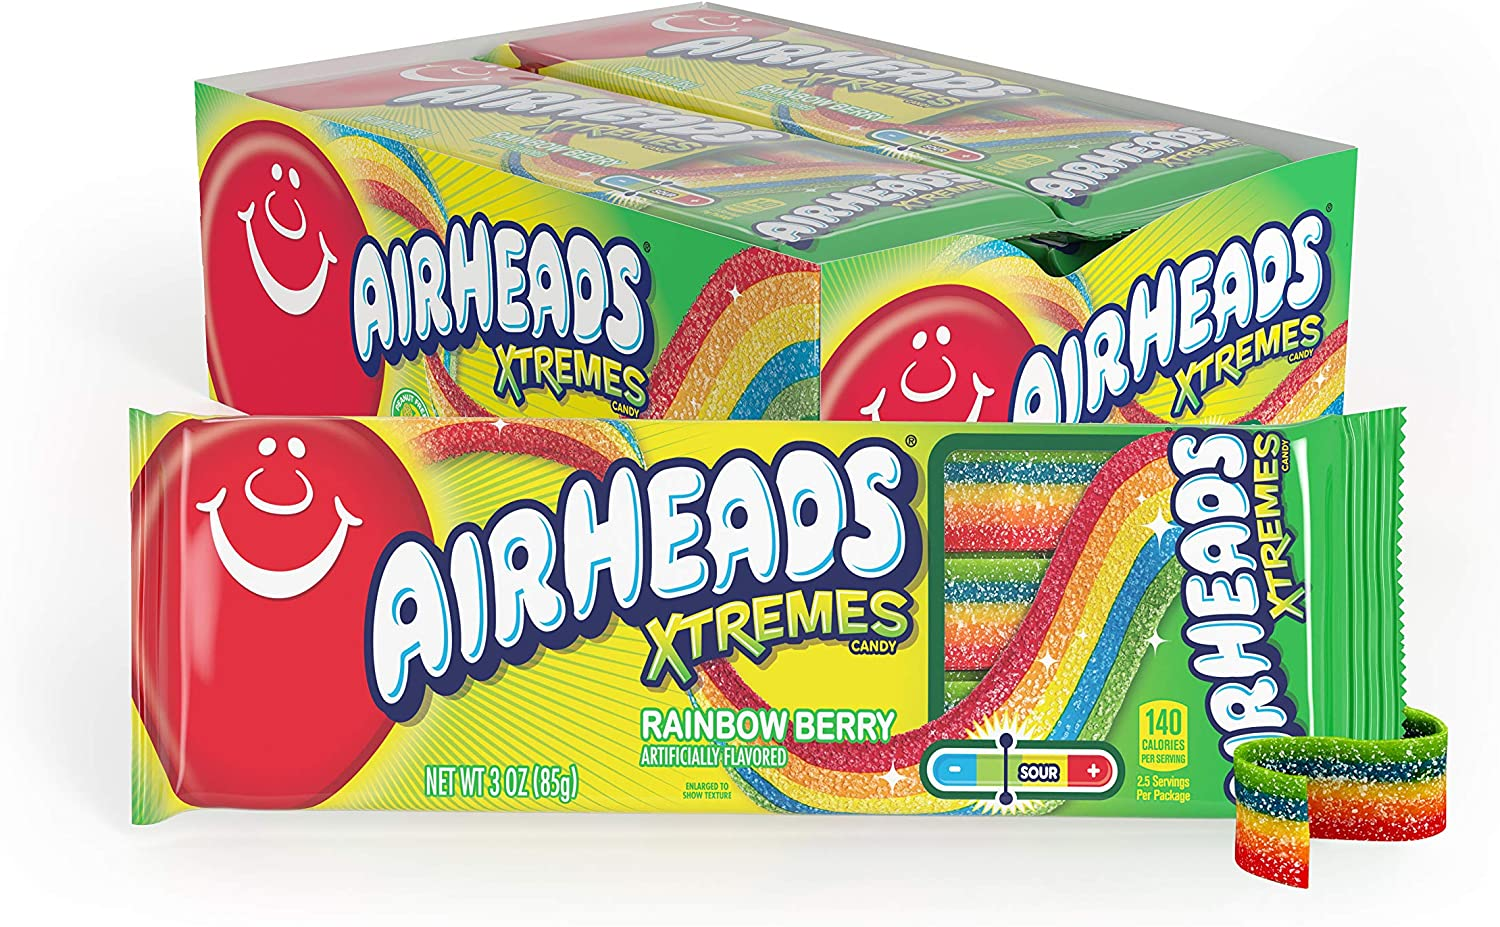 Airheads Xtremes Belts Sweetly Sour Candy, Halloween Treat, Rainbow Berry, Non Melting, Bulk Movie Theater and Party Bag, 3 oz (Pack of 12) : Grocery & Gourmet Food